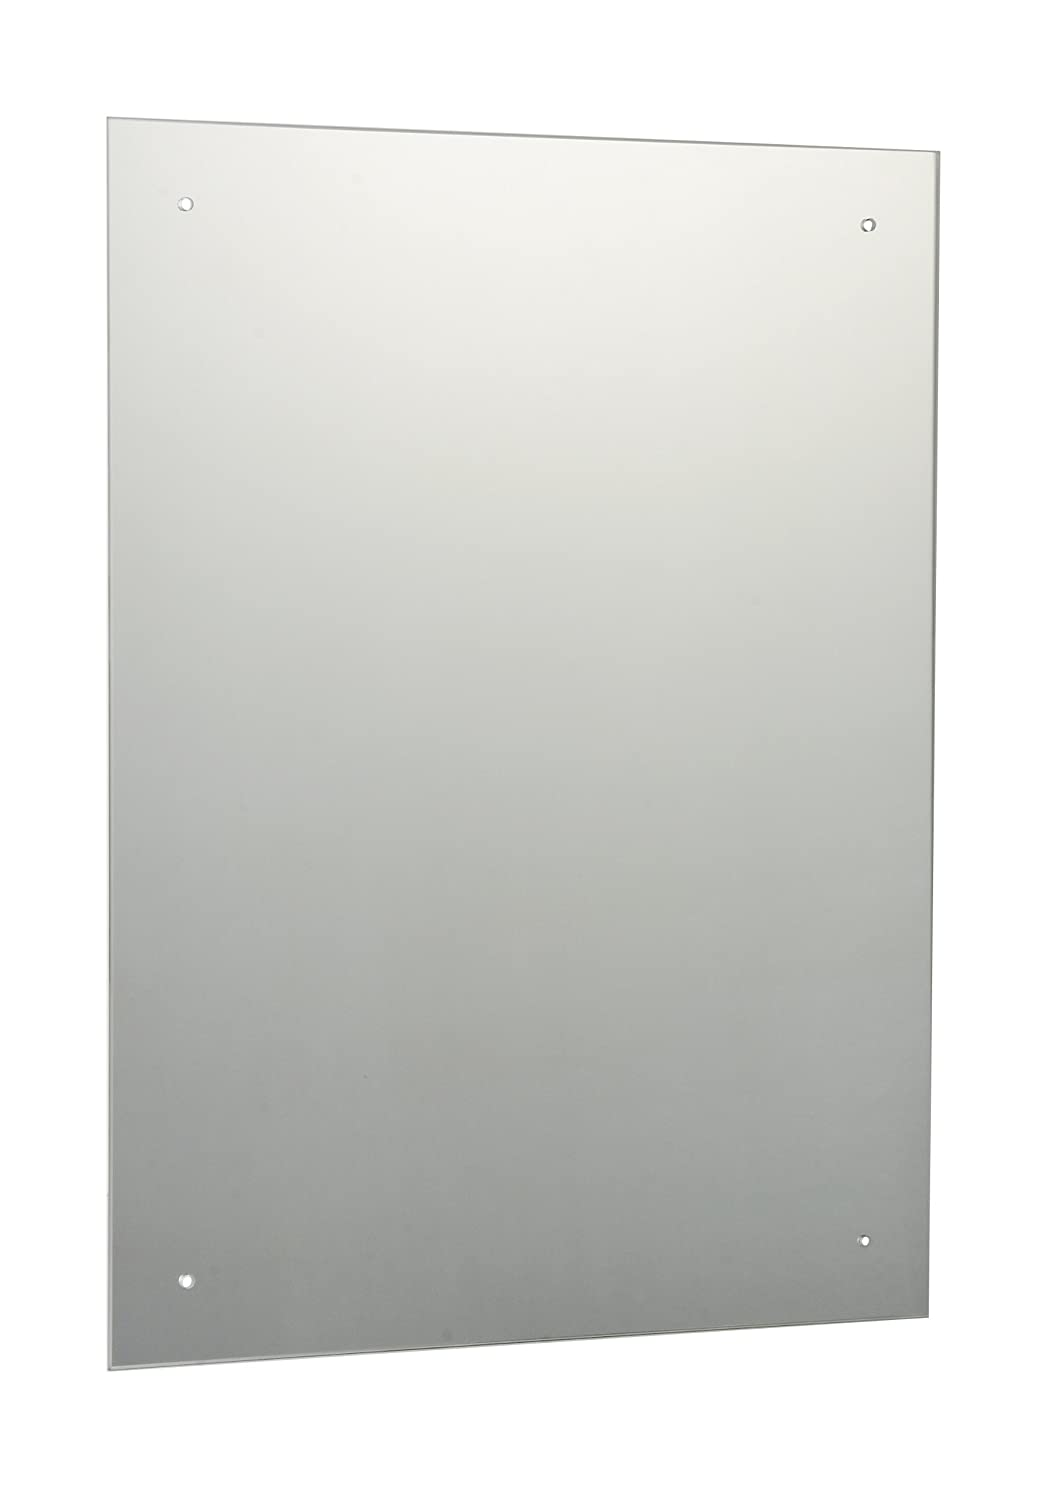 40 x 50cm Rectangle Bathroom Mirror with Drilled Holes & Chrome ...